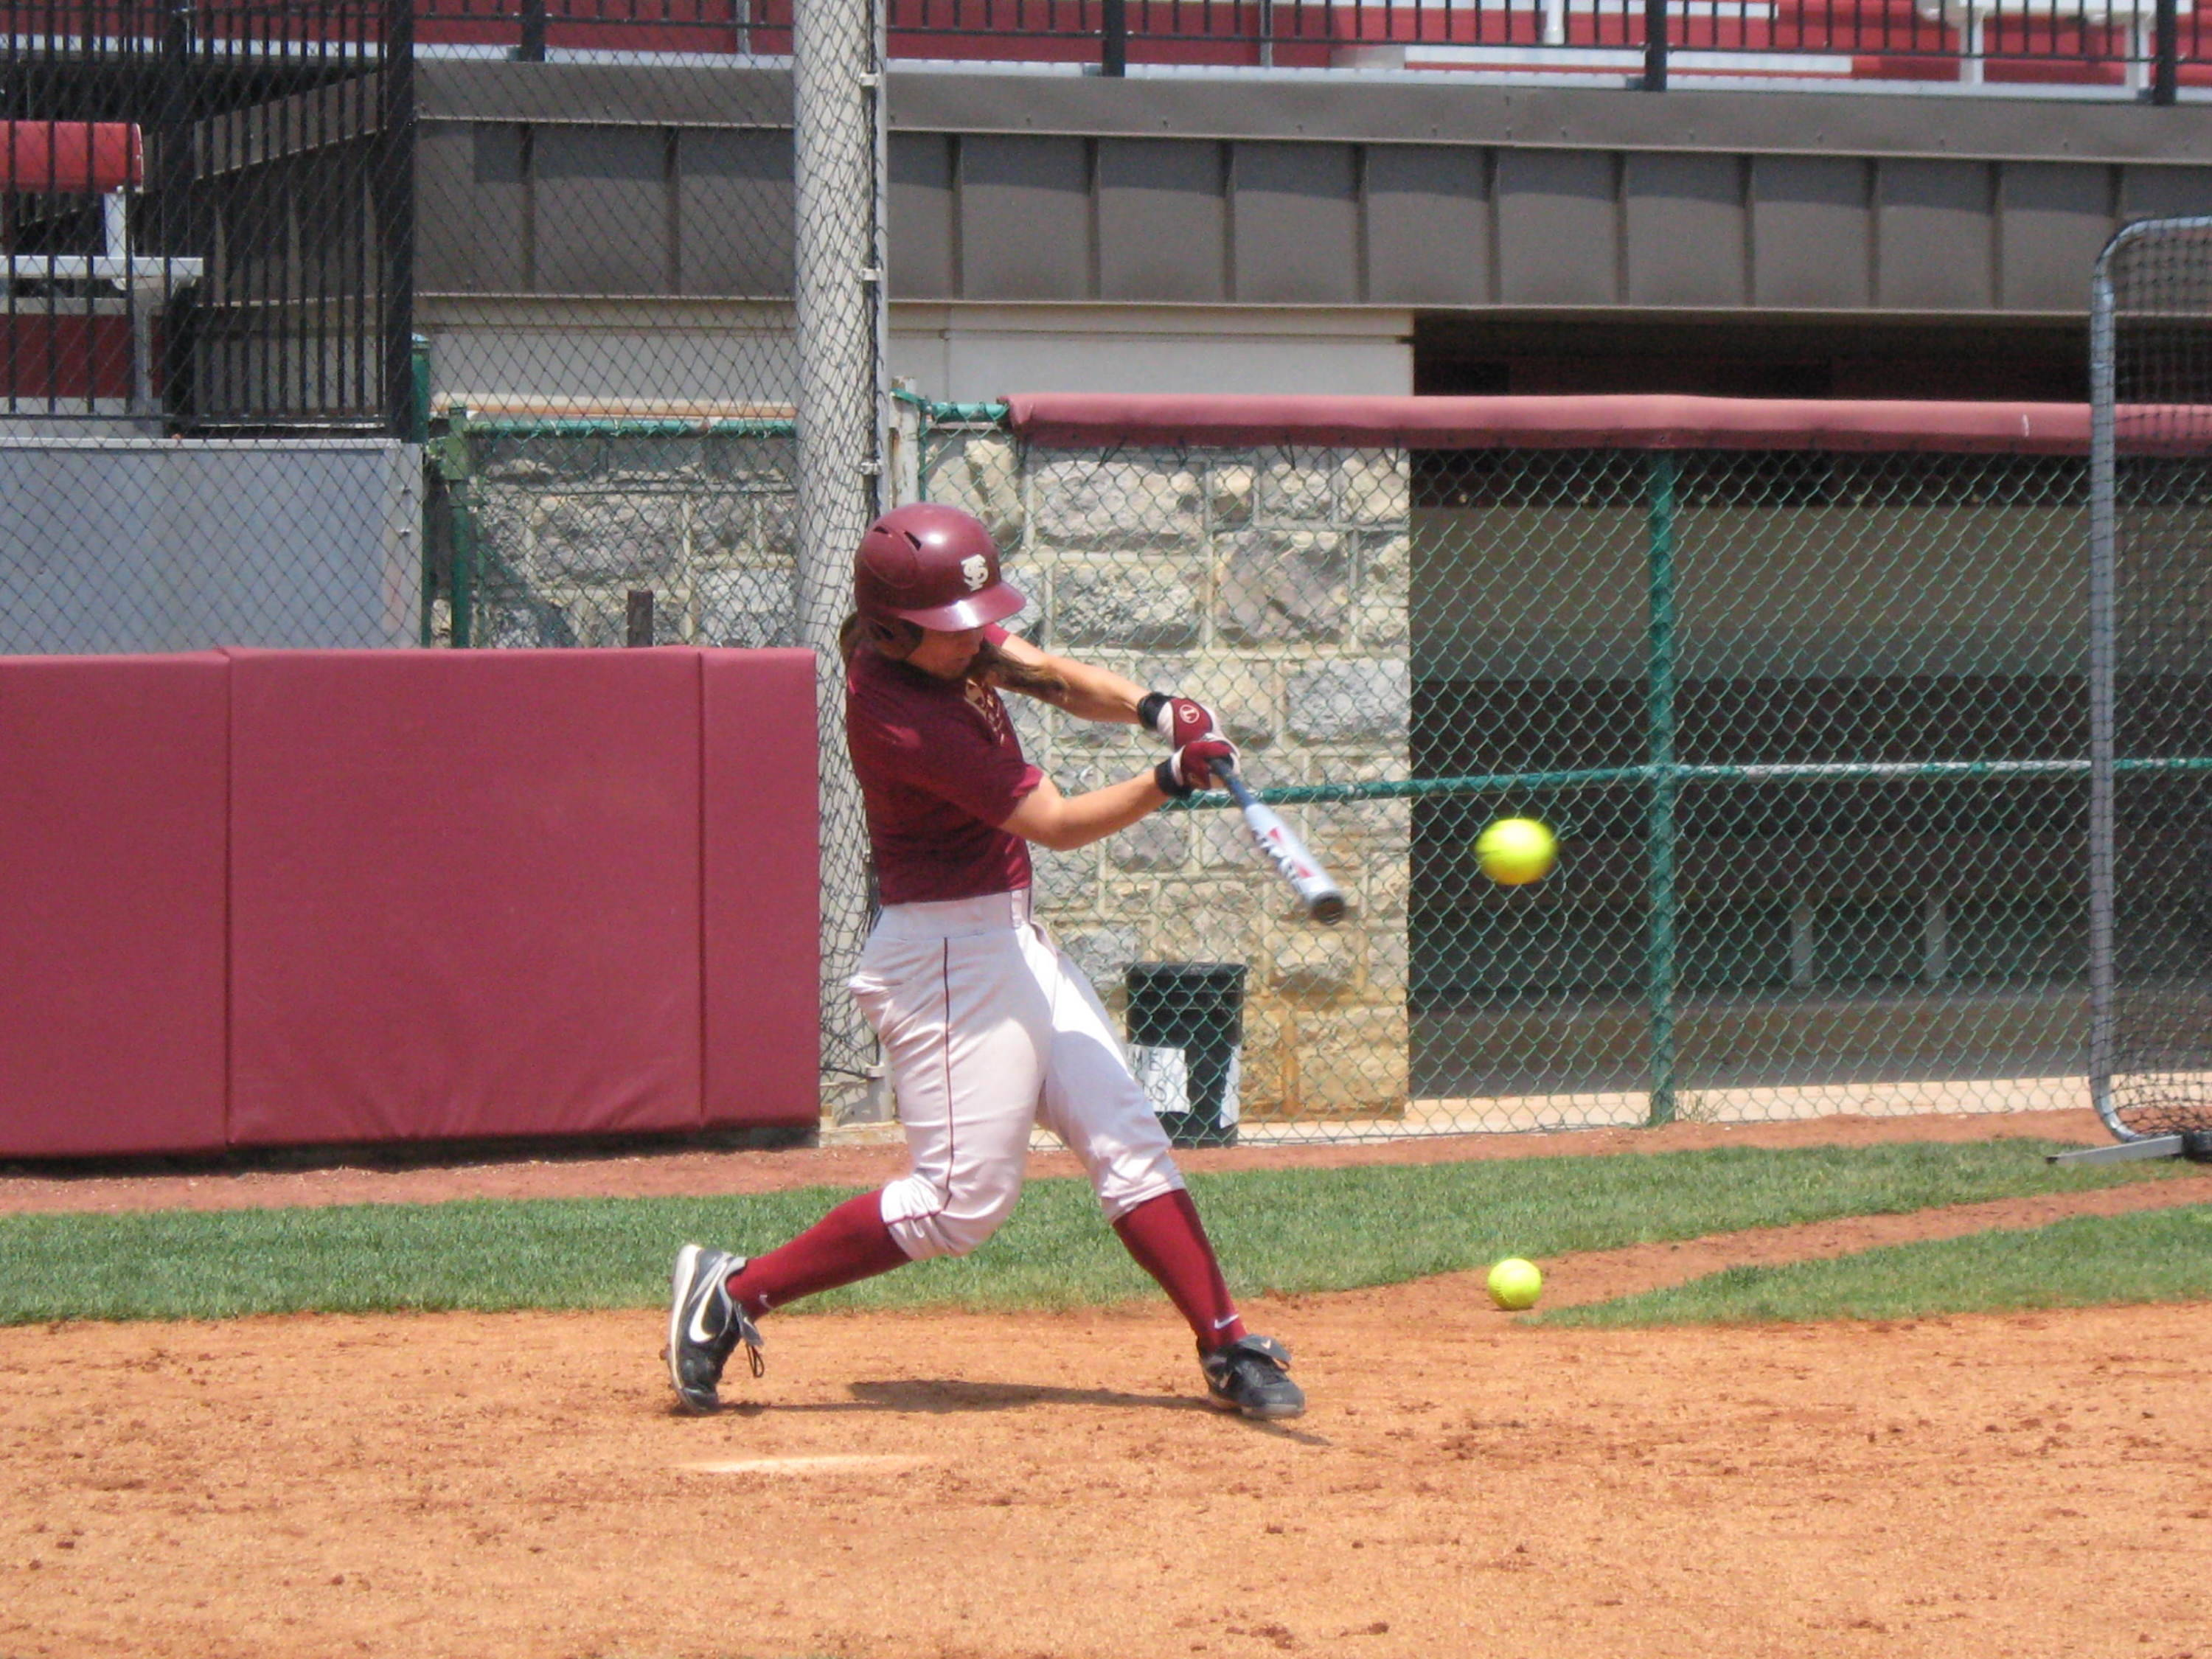 Jen Lapicki connects on a pitch during practice on Thursday.